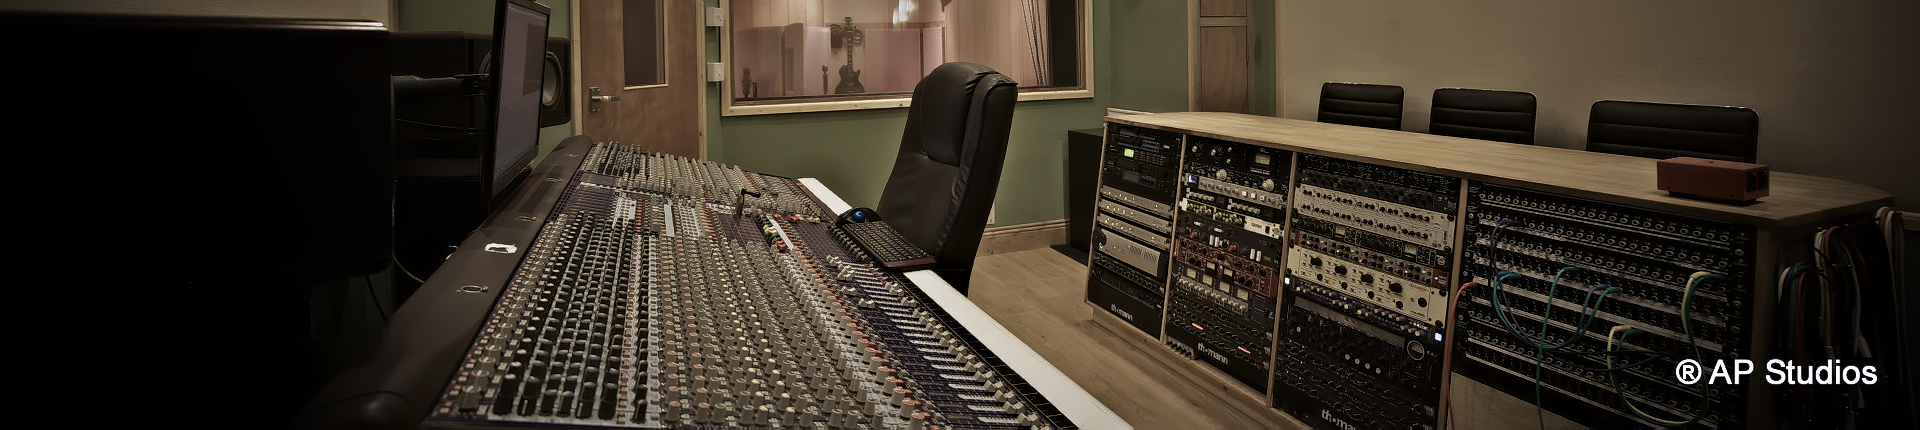 AP Recording Studios Dublin Control Room entrance view